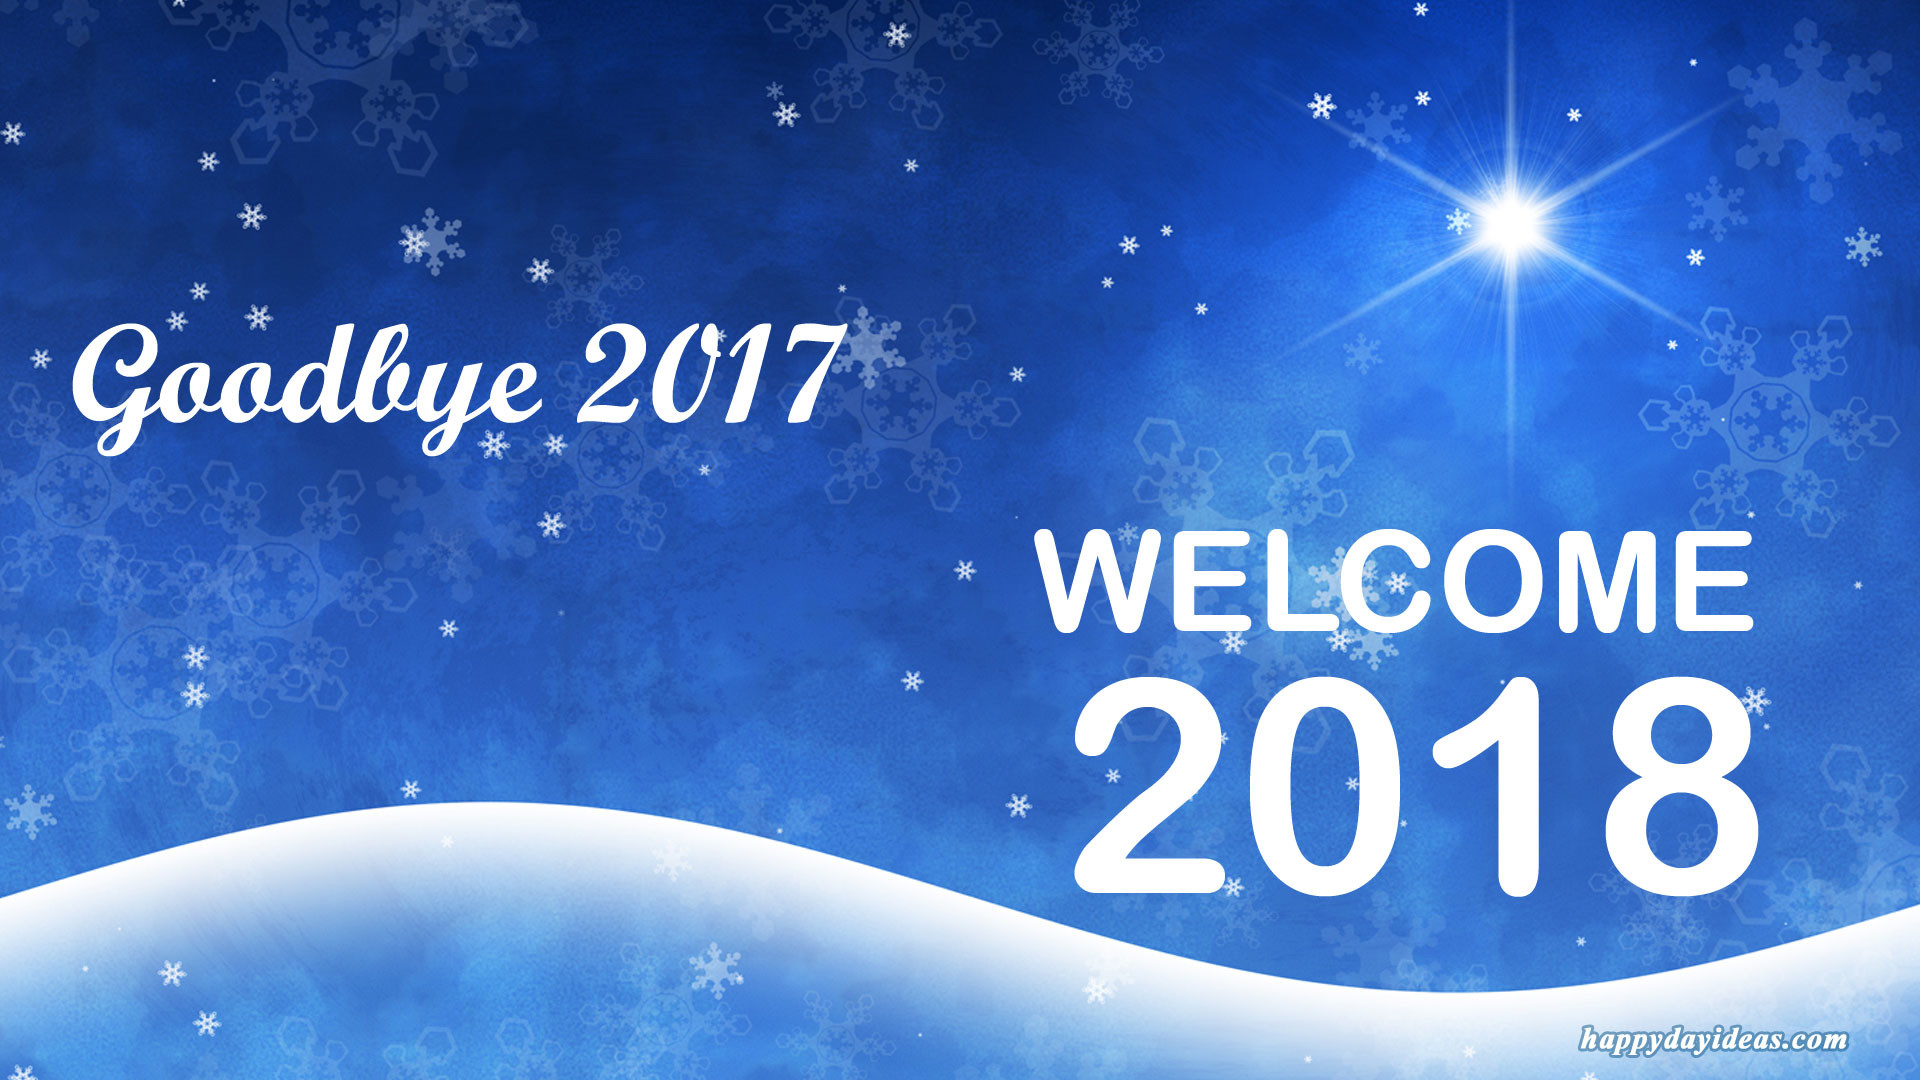 1920x1080 Goodbye 2016 Welcome 2017 Wallpaper Images Source · Goodbye 2017  Welcome 2018 Images Wallpaper